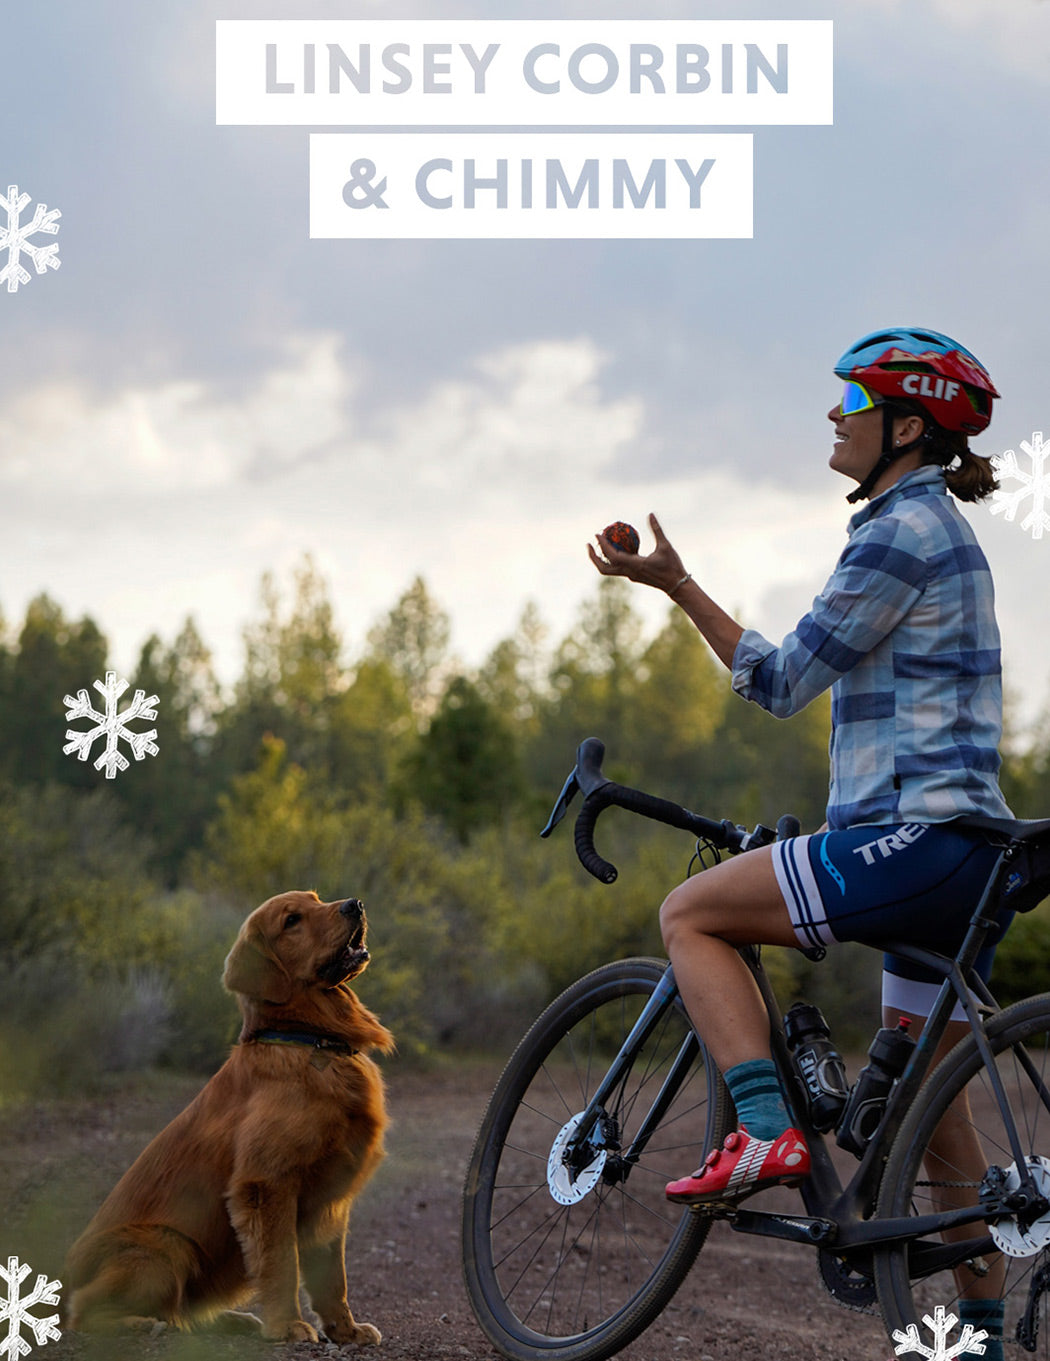 Linsey sits on her gravel bike throwing a ball in the air for Chimmy.